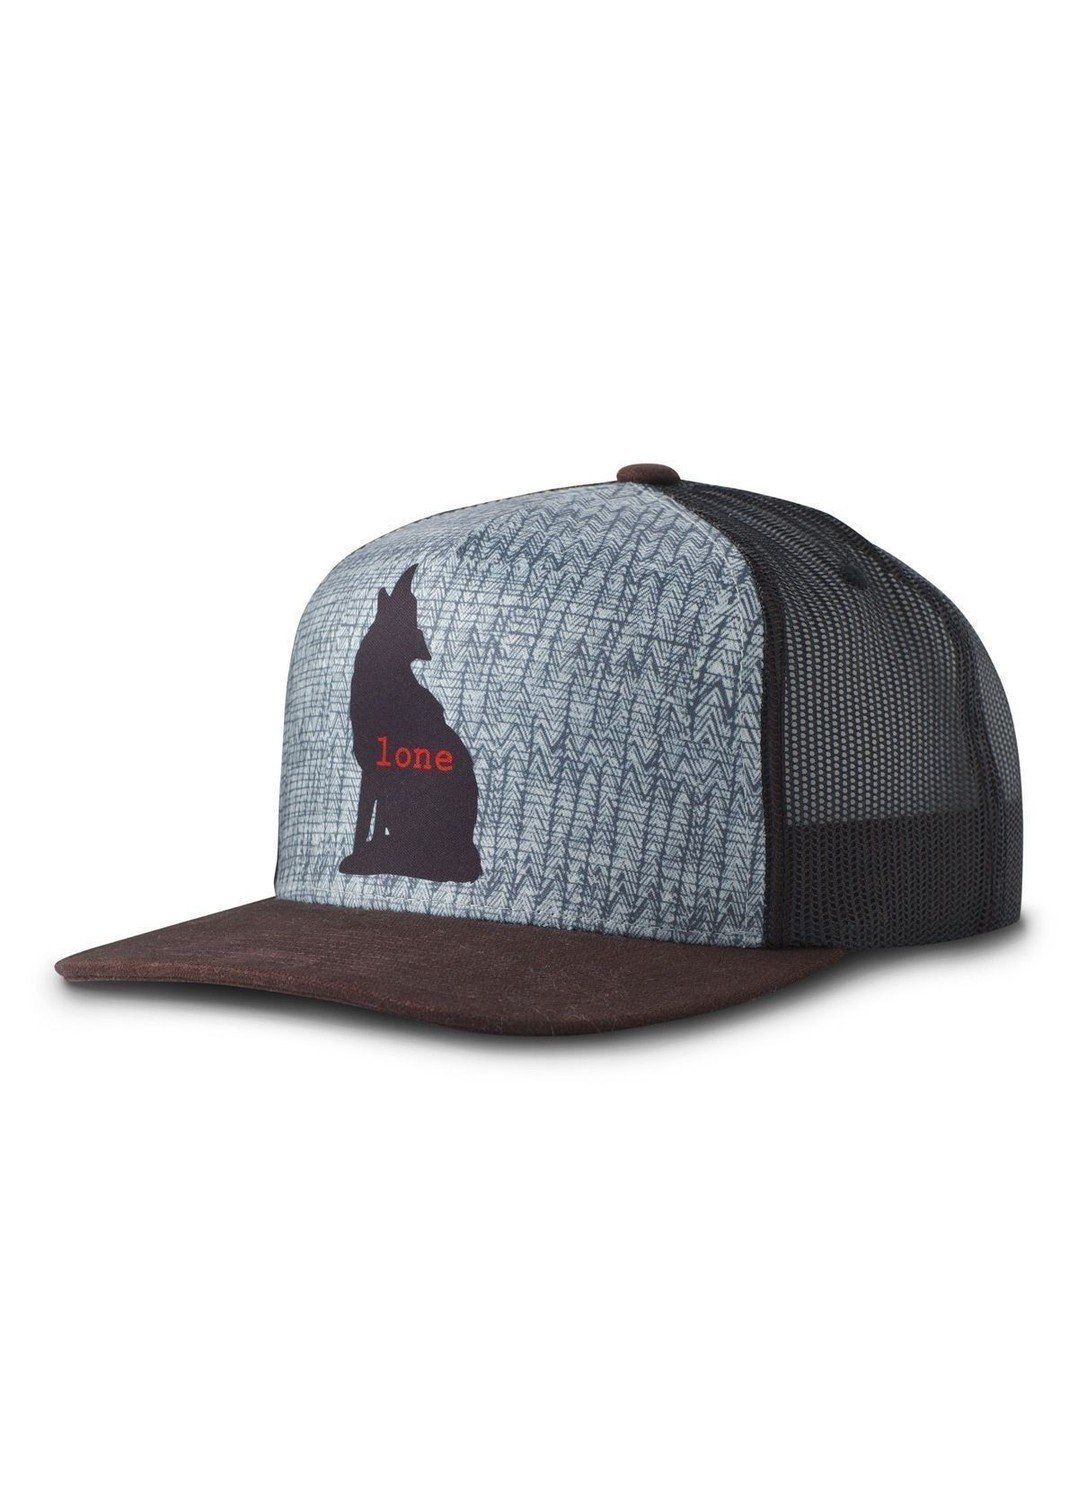 prAna Journeyman Trucker Hat Lone Wolf